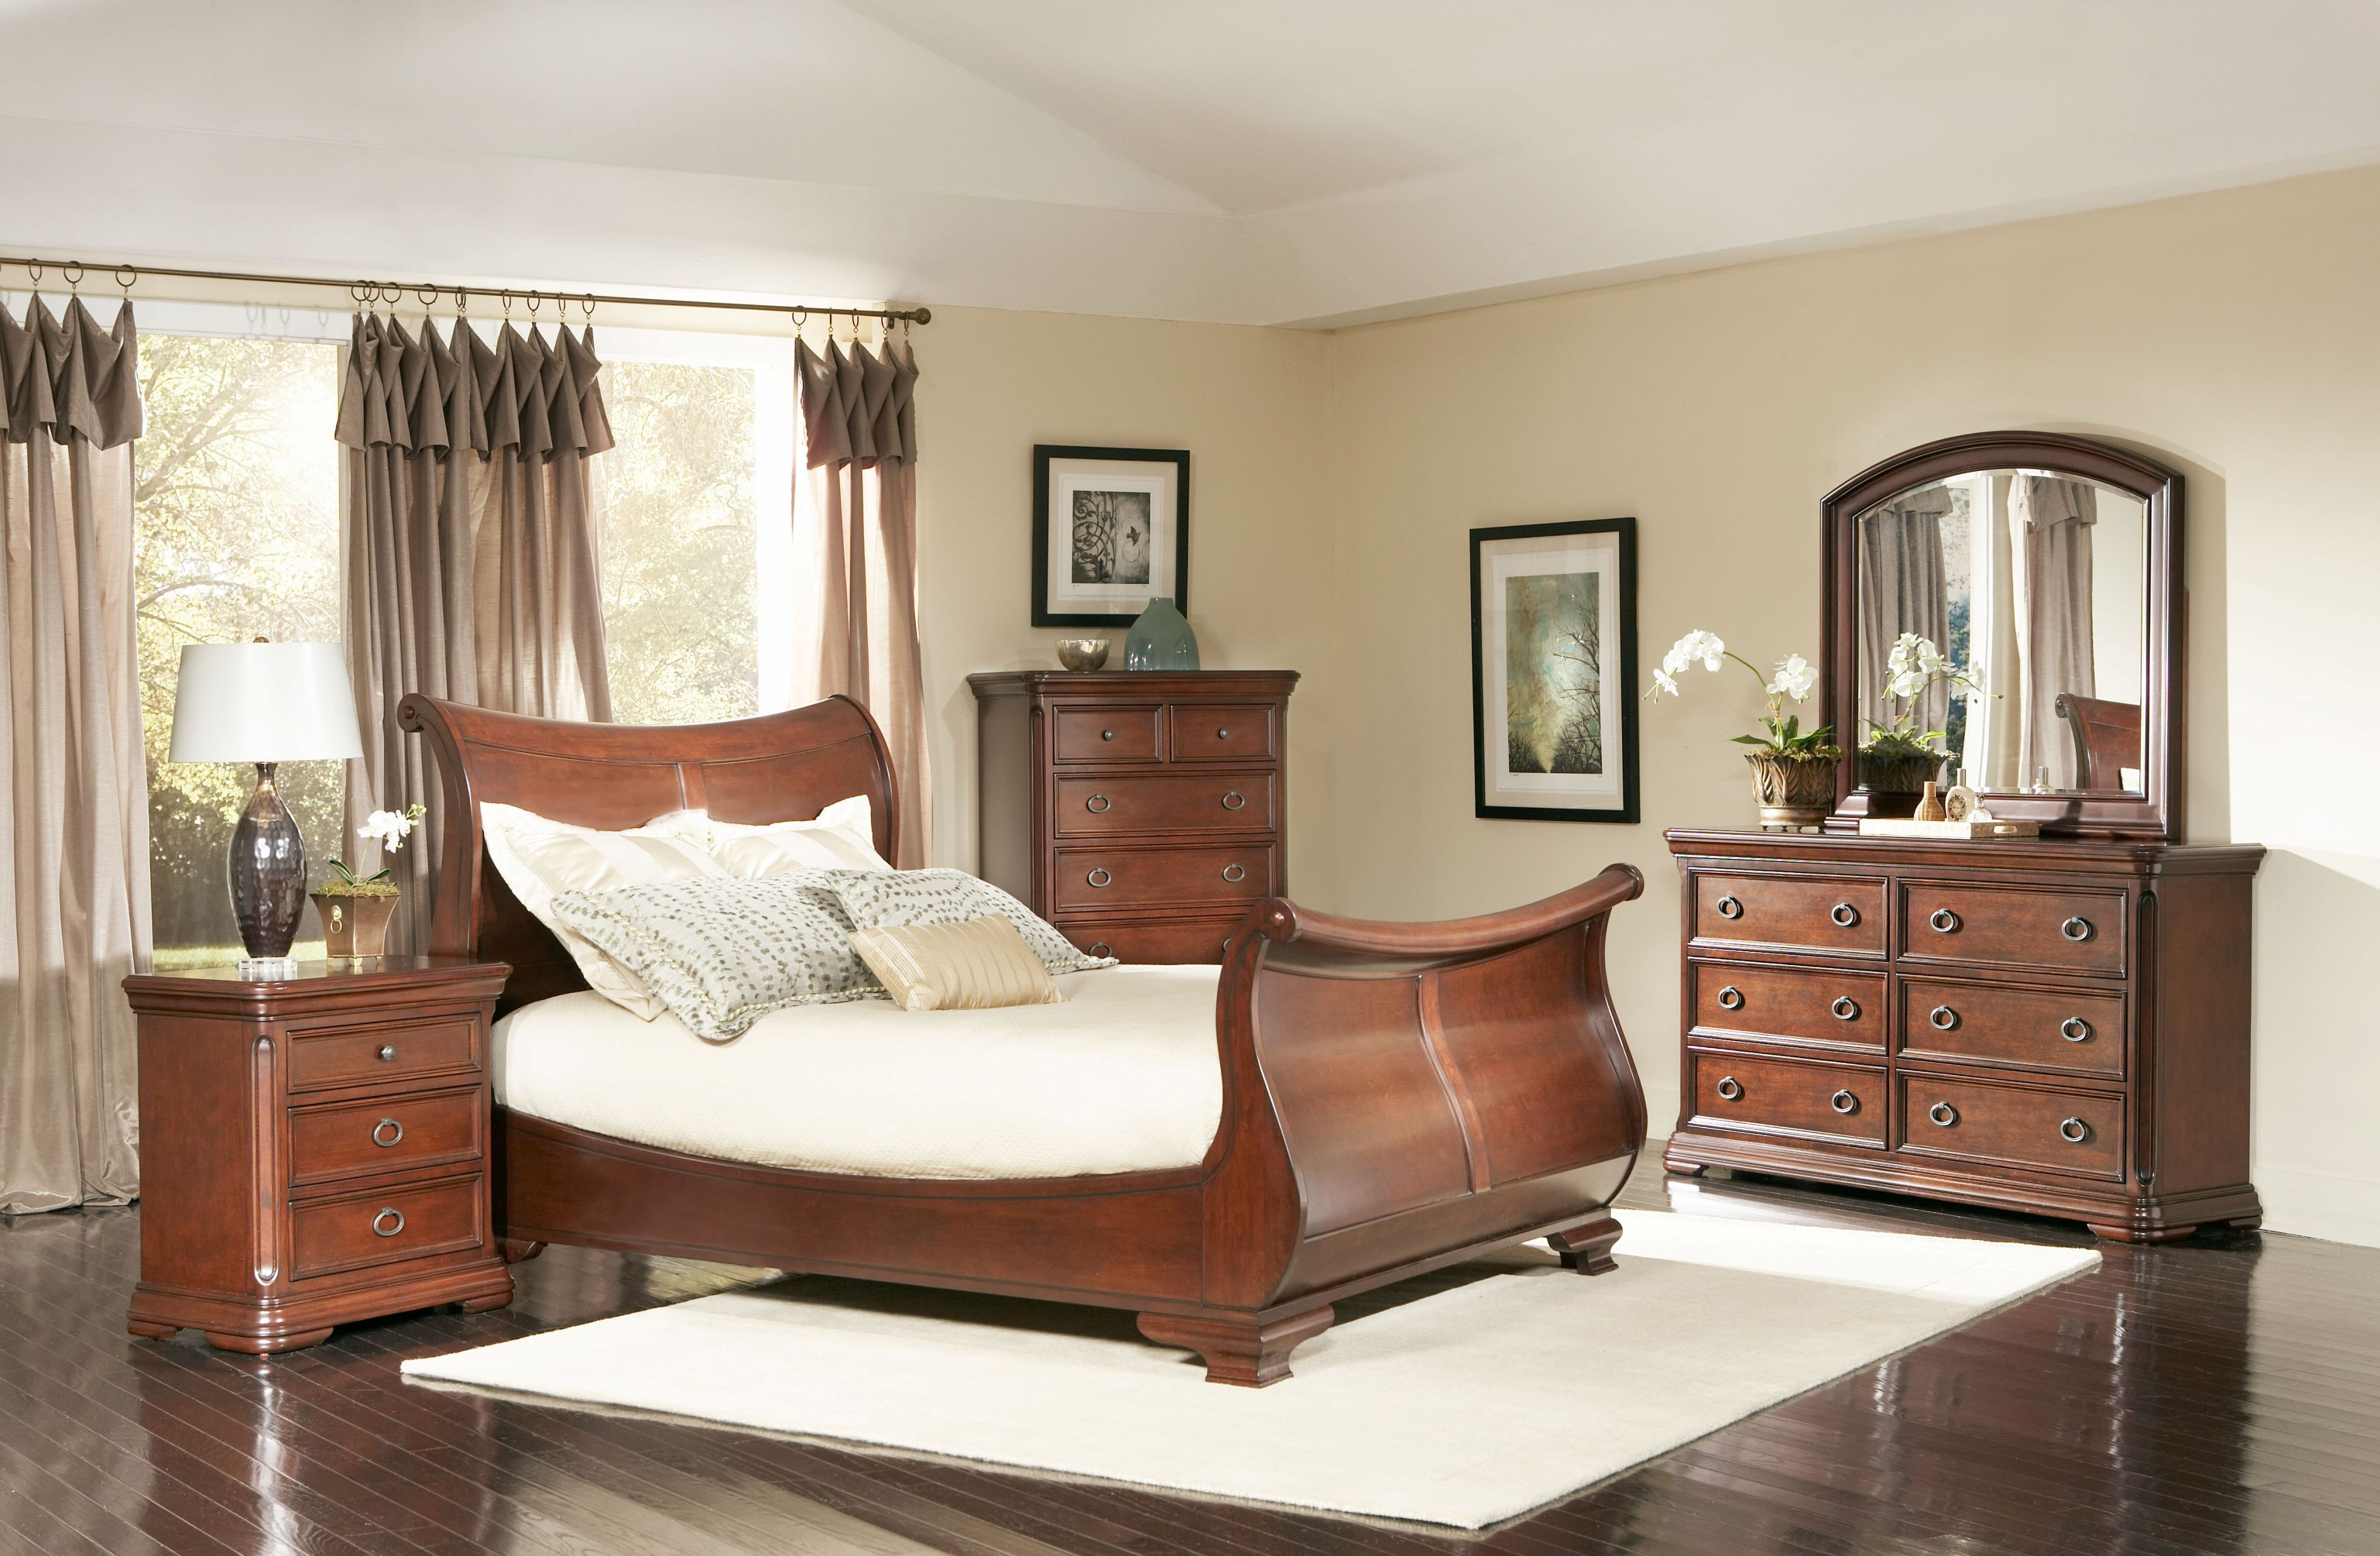 Largo Furniture Marseille French country style bedroom